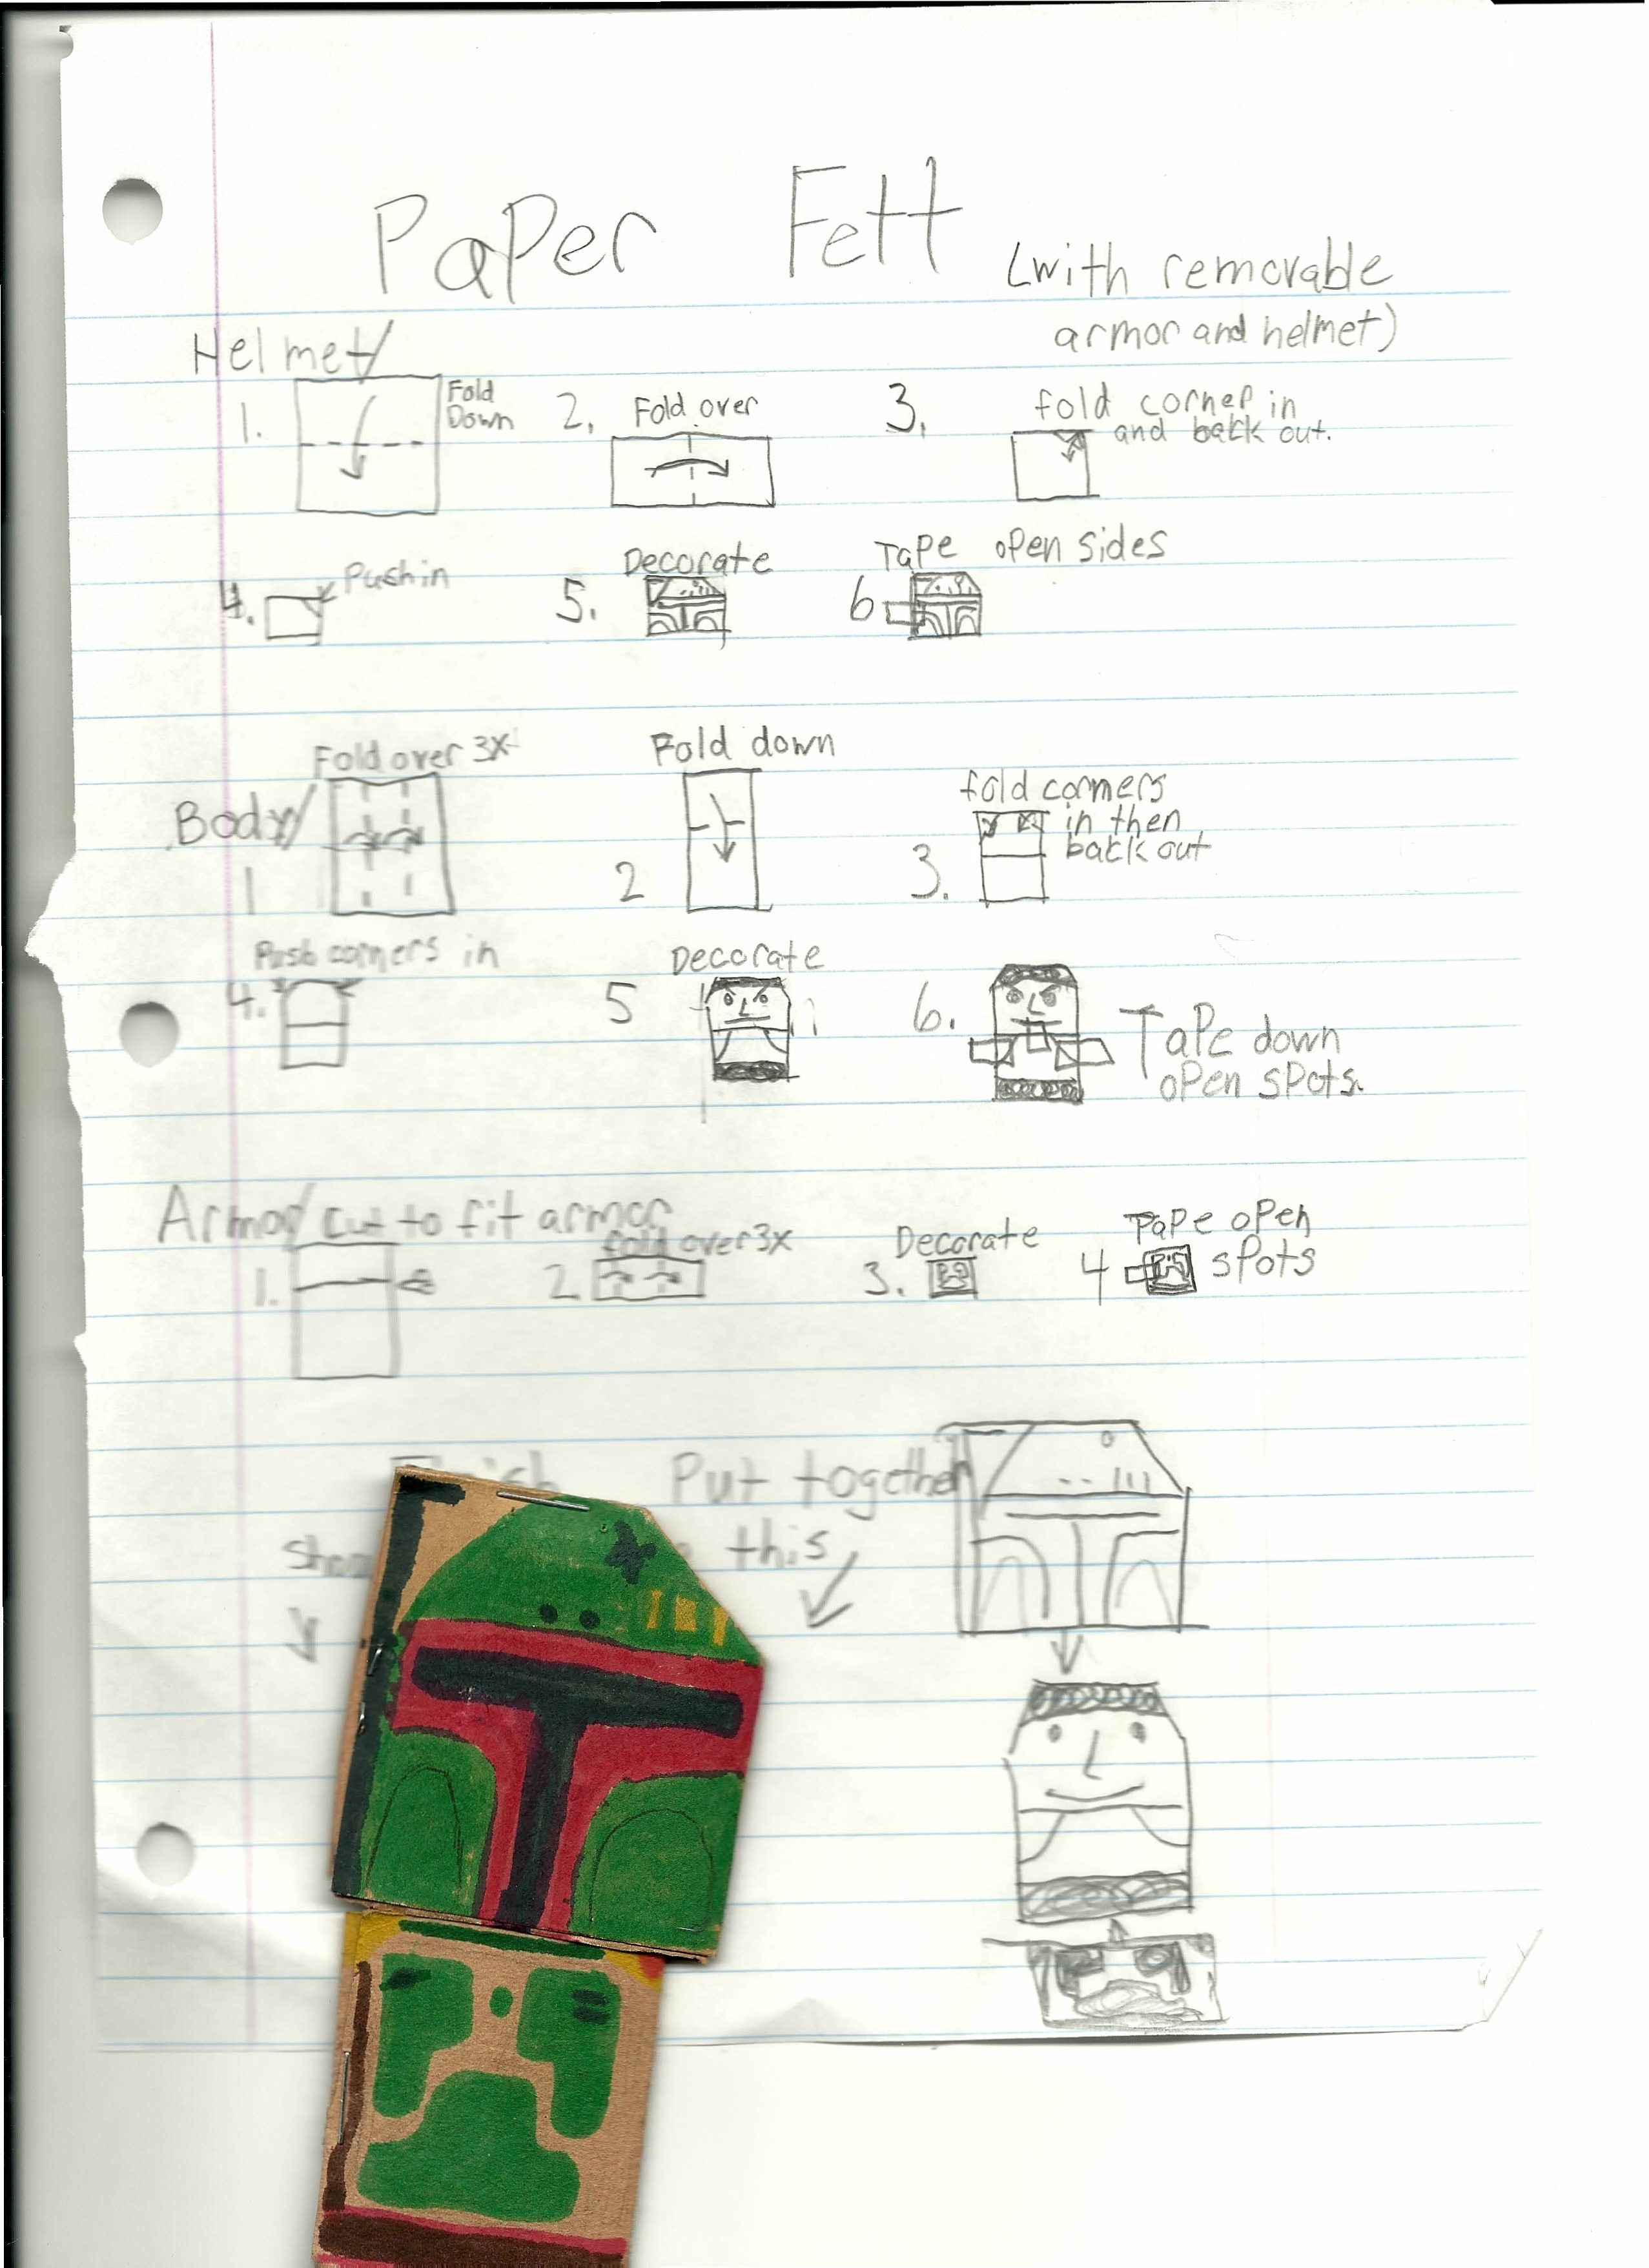 How To Make An Origami R2d2 Instructions